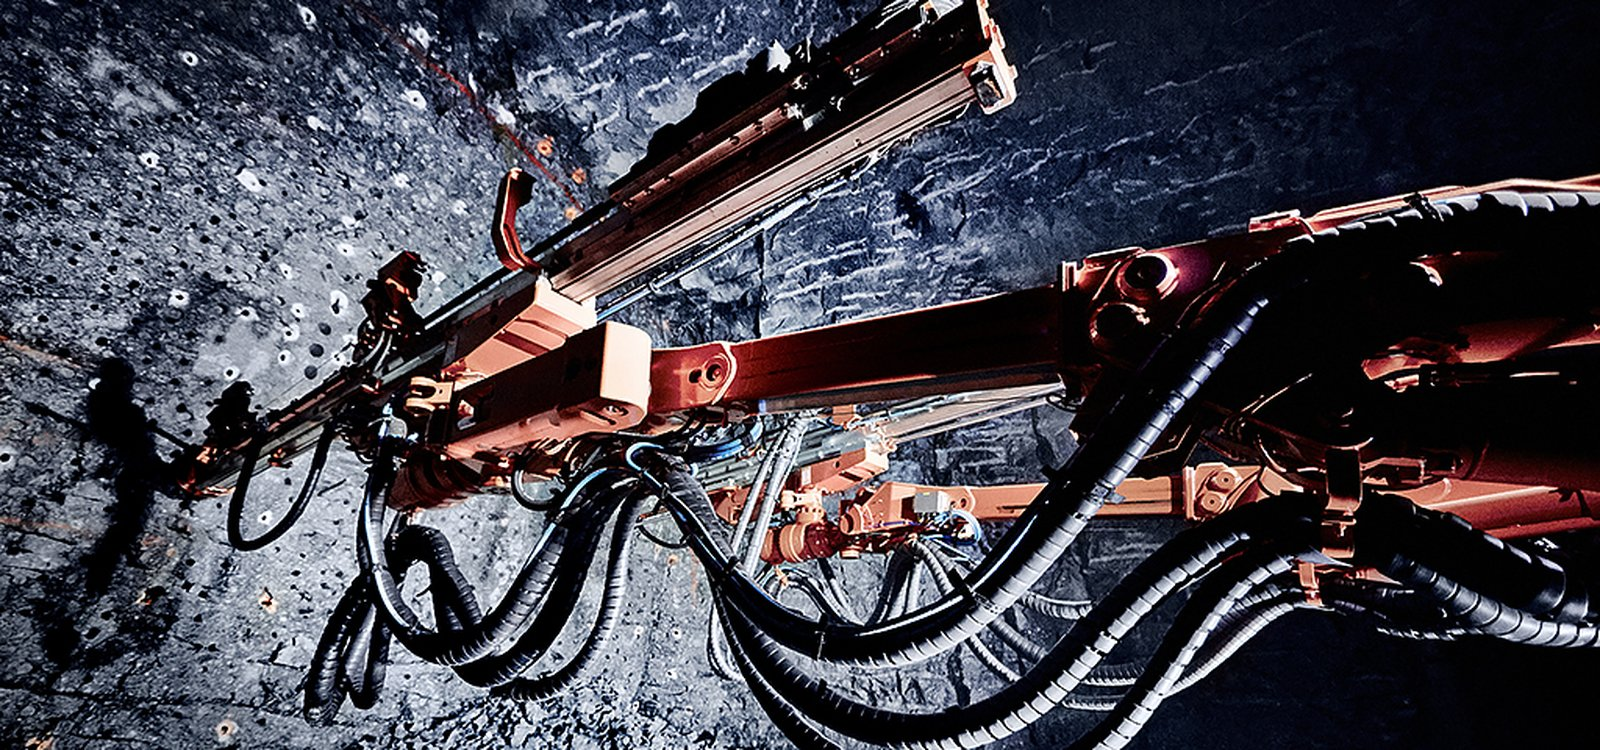 The rig's drilling and boom control system for the first time introduces torque-based drilling control in the Sandvik mining jumbo fleet.